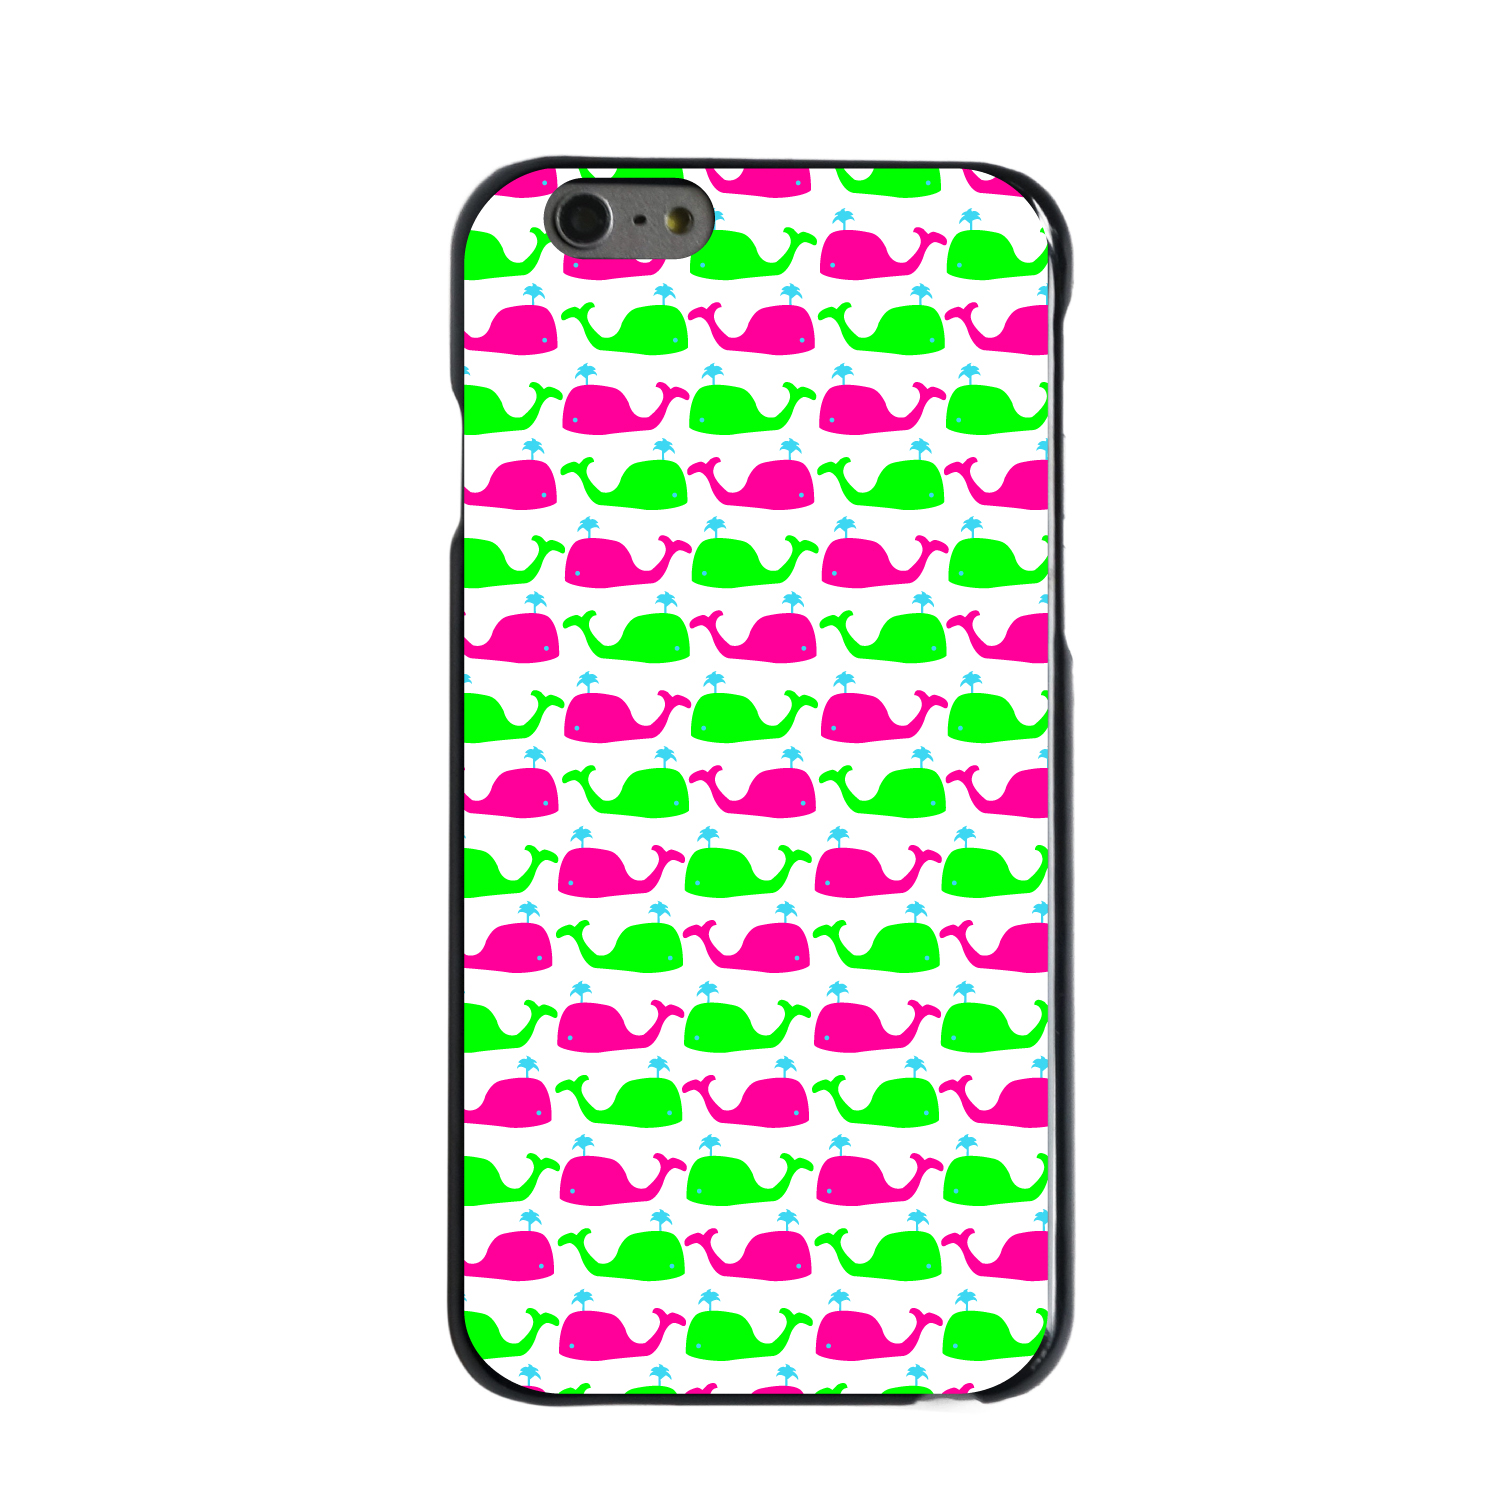 """CUSTOM Black Hard Plastic Snap-On Case for Apple iPhone 6 / 6S (4.7"""" Screen) - Green Pink Cartoon Whales"""